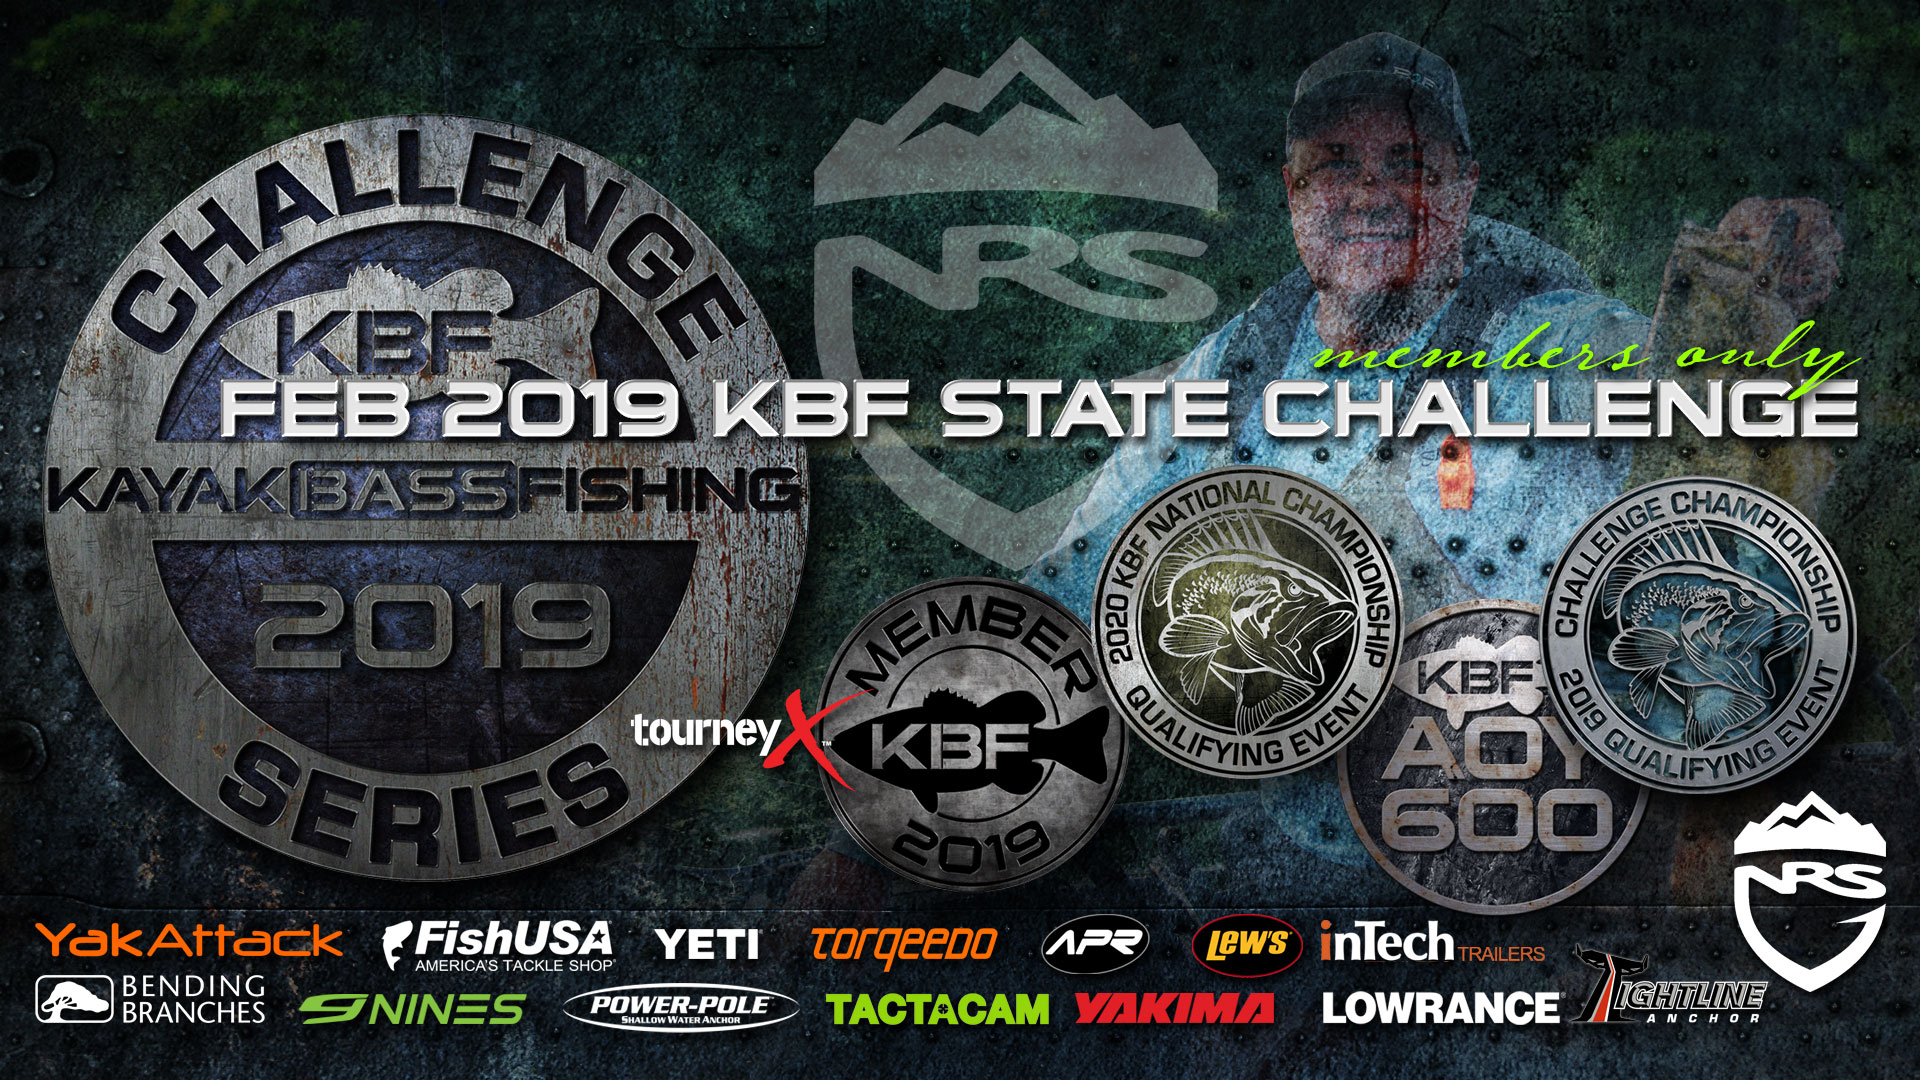 Kbf State Challenge February 2019 | Kayak Bass Fishing